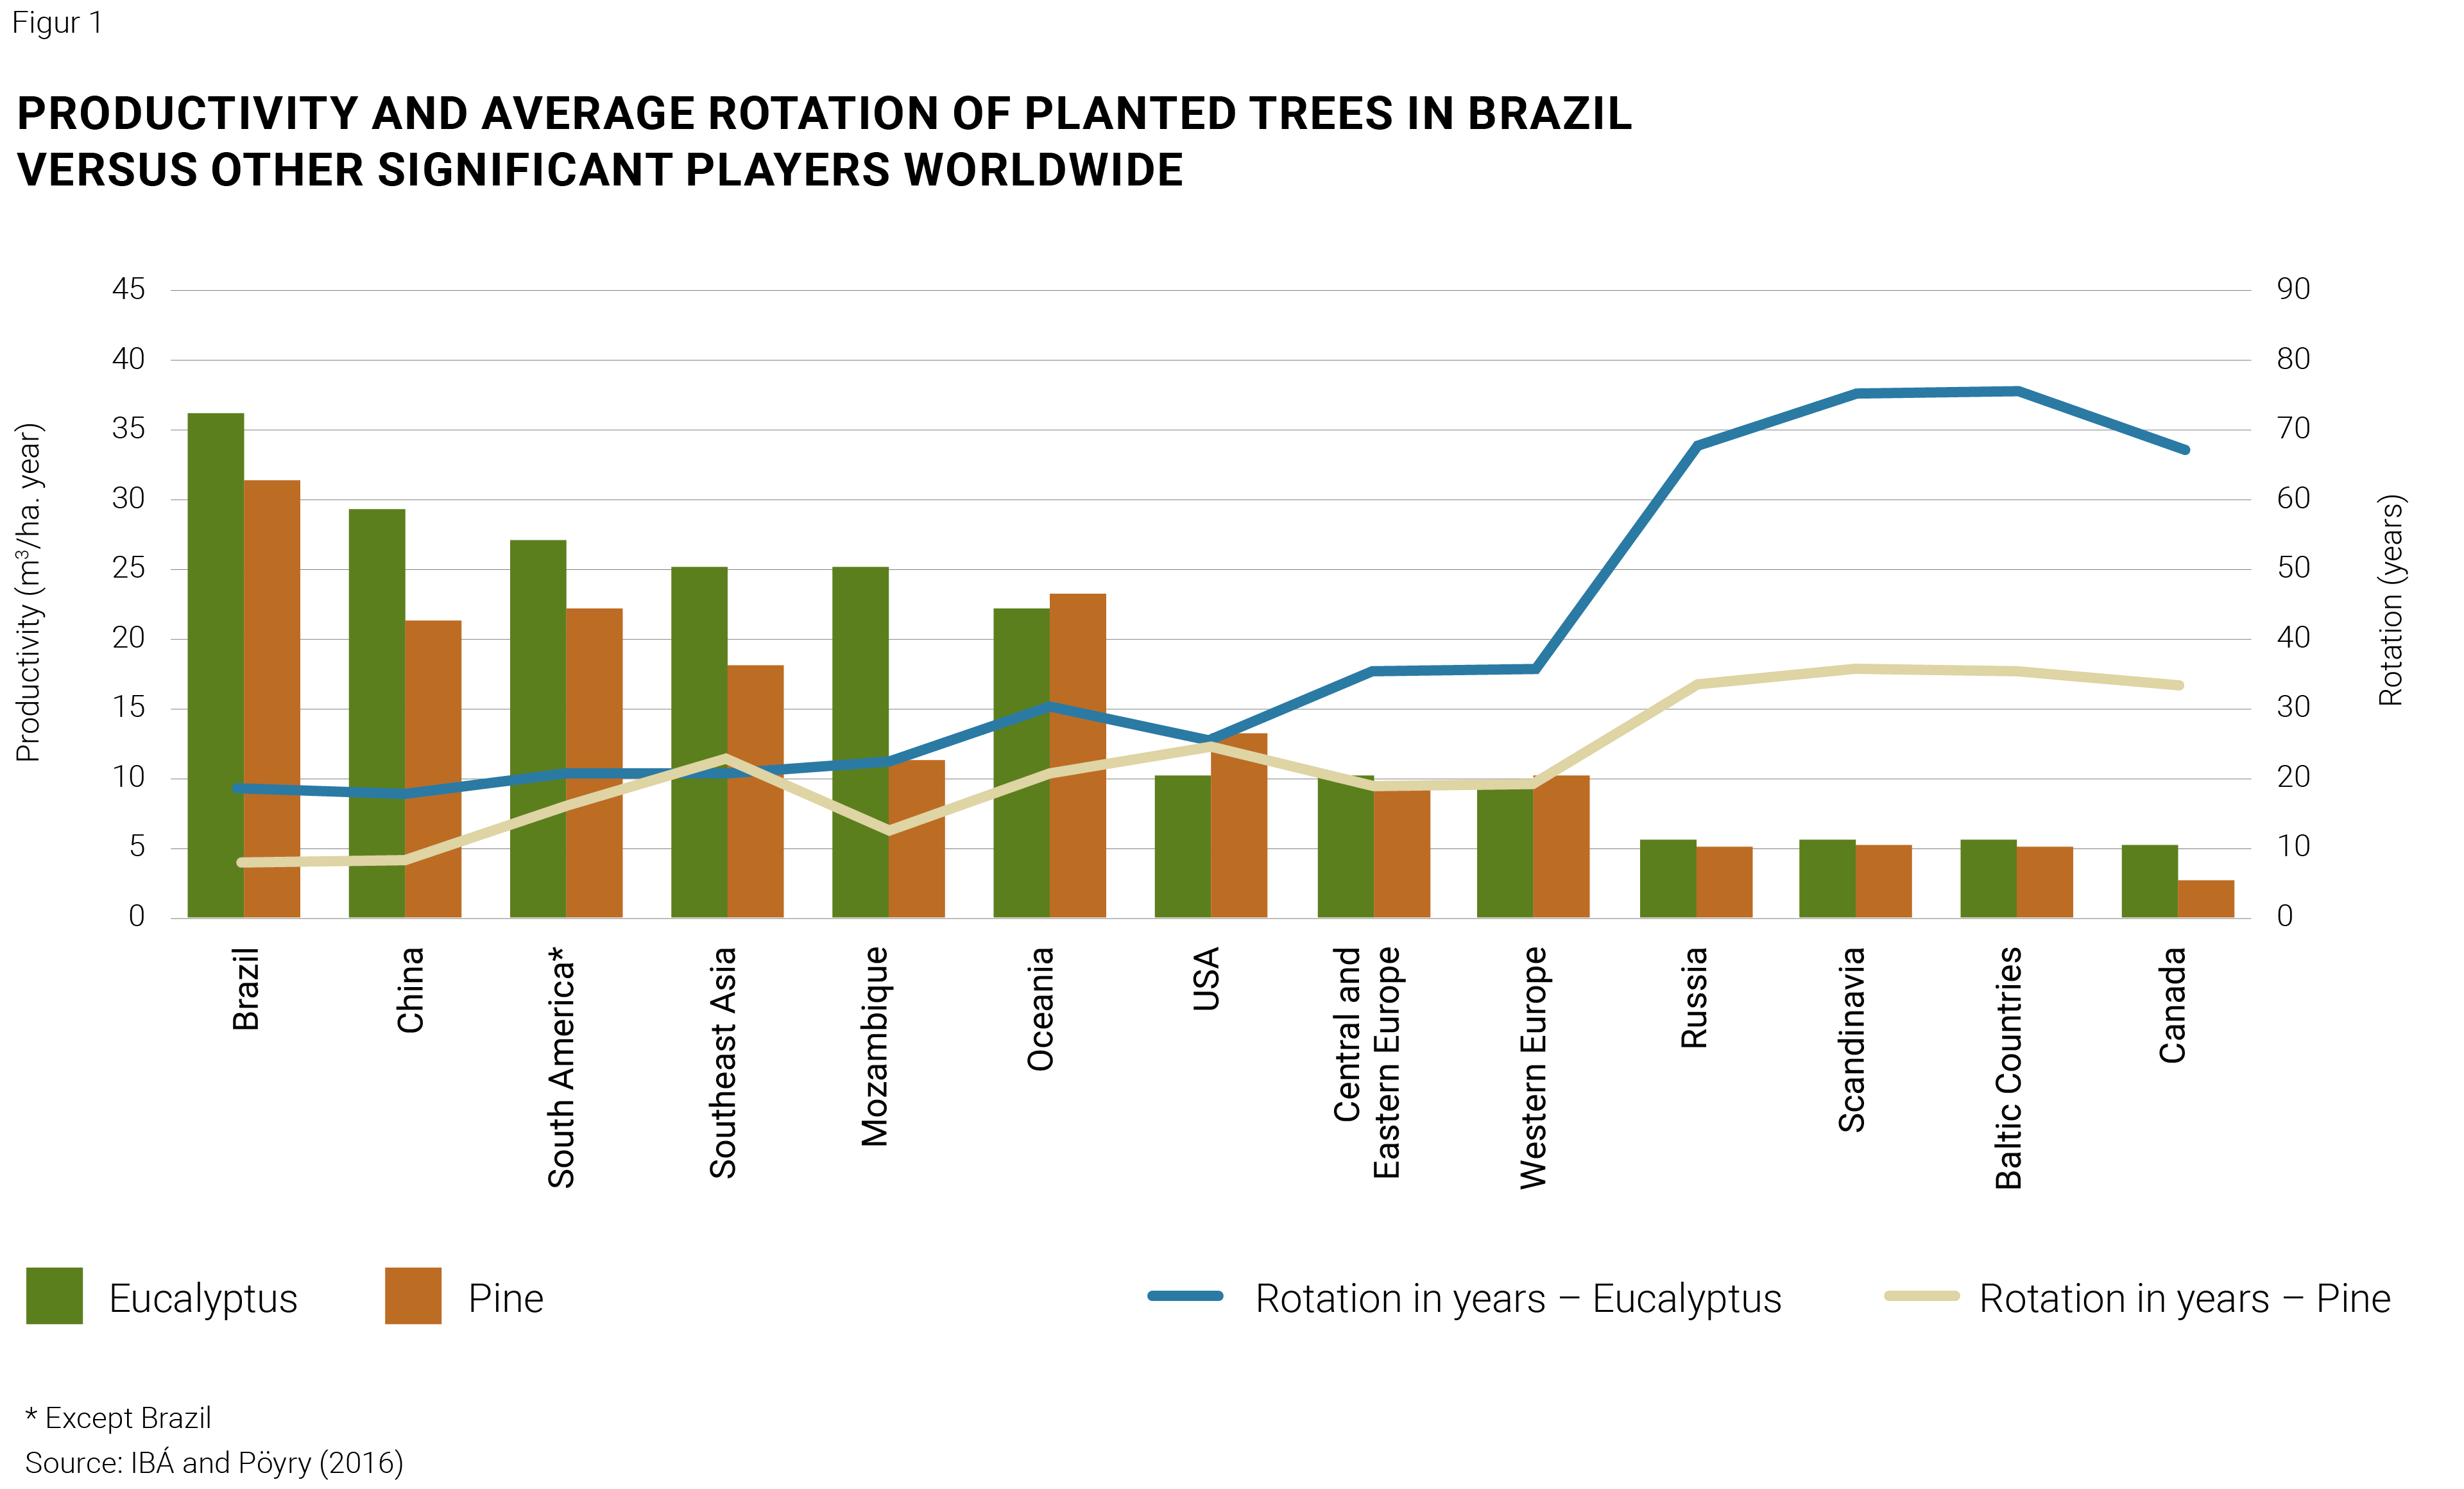 Productivity and average rotation of planted trees in brazil versus other significant players worldwide